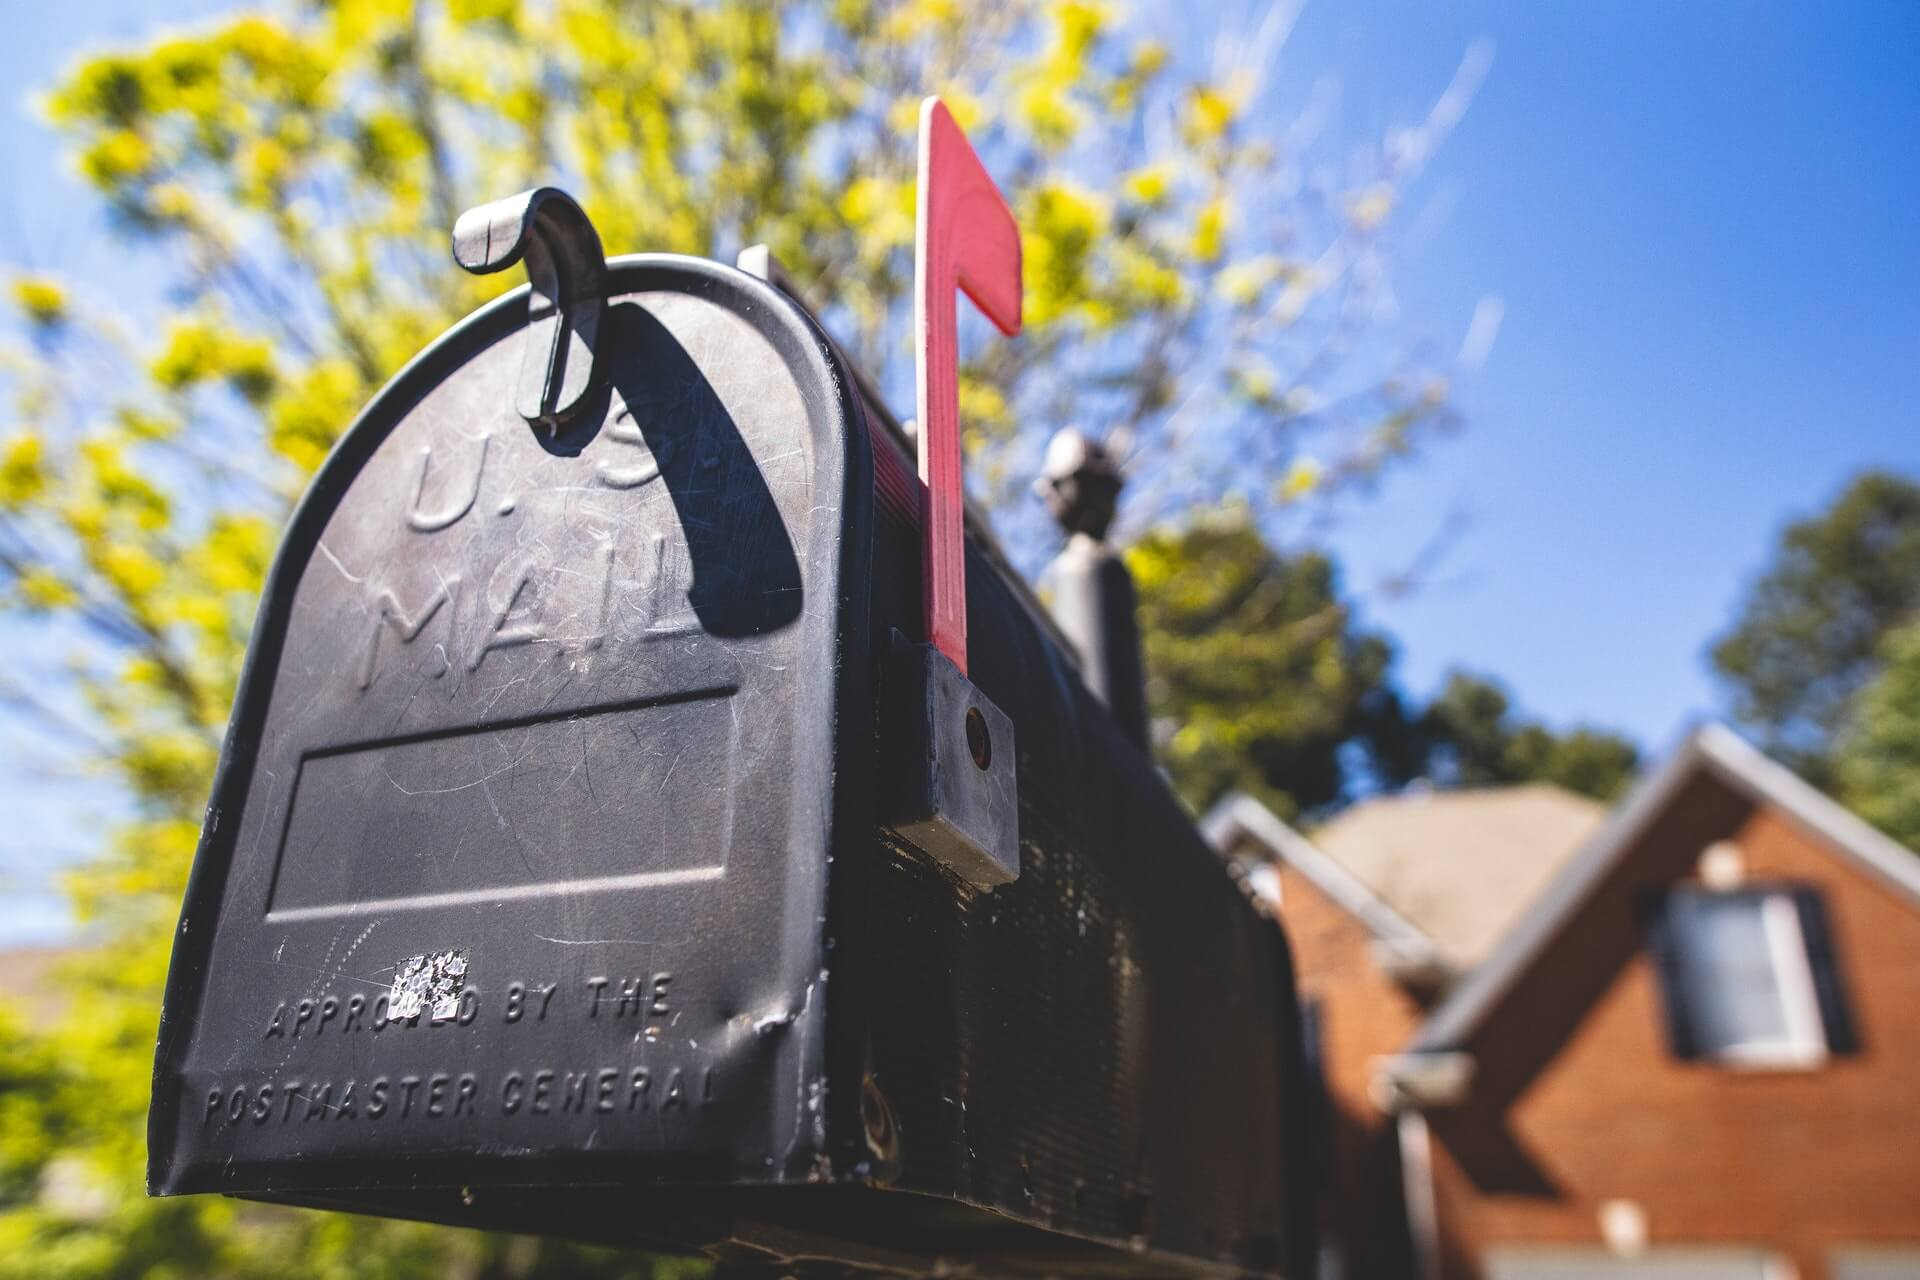 Forward your mail when you move